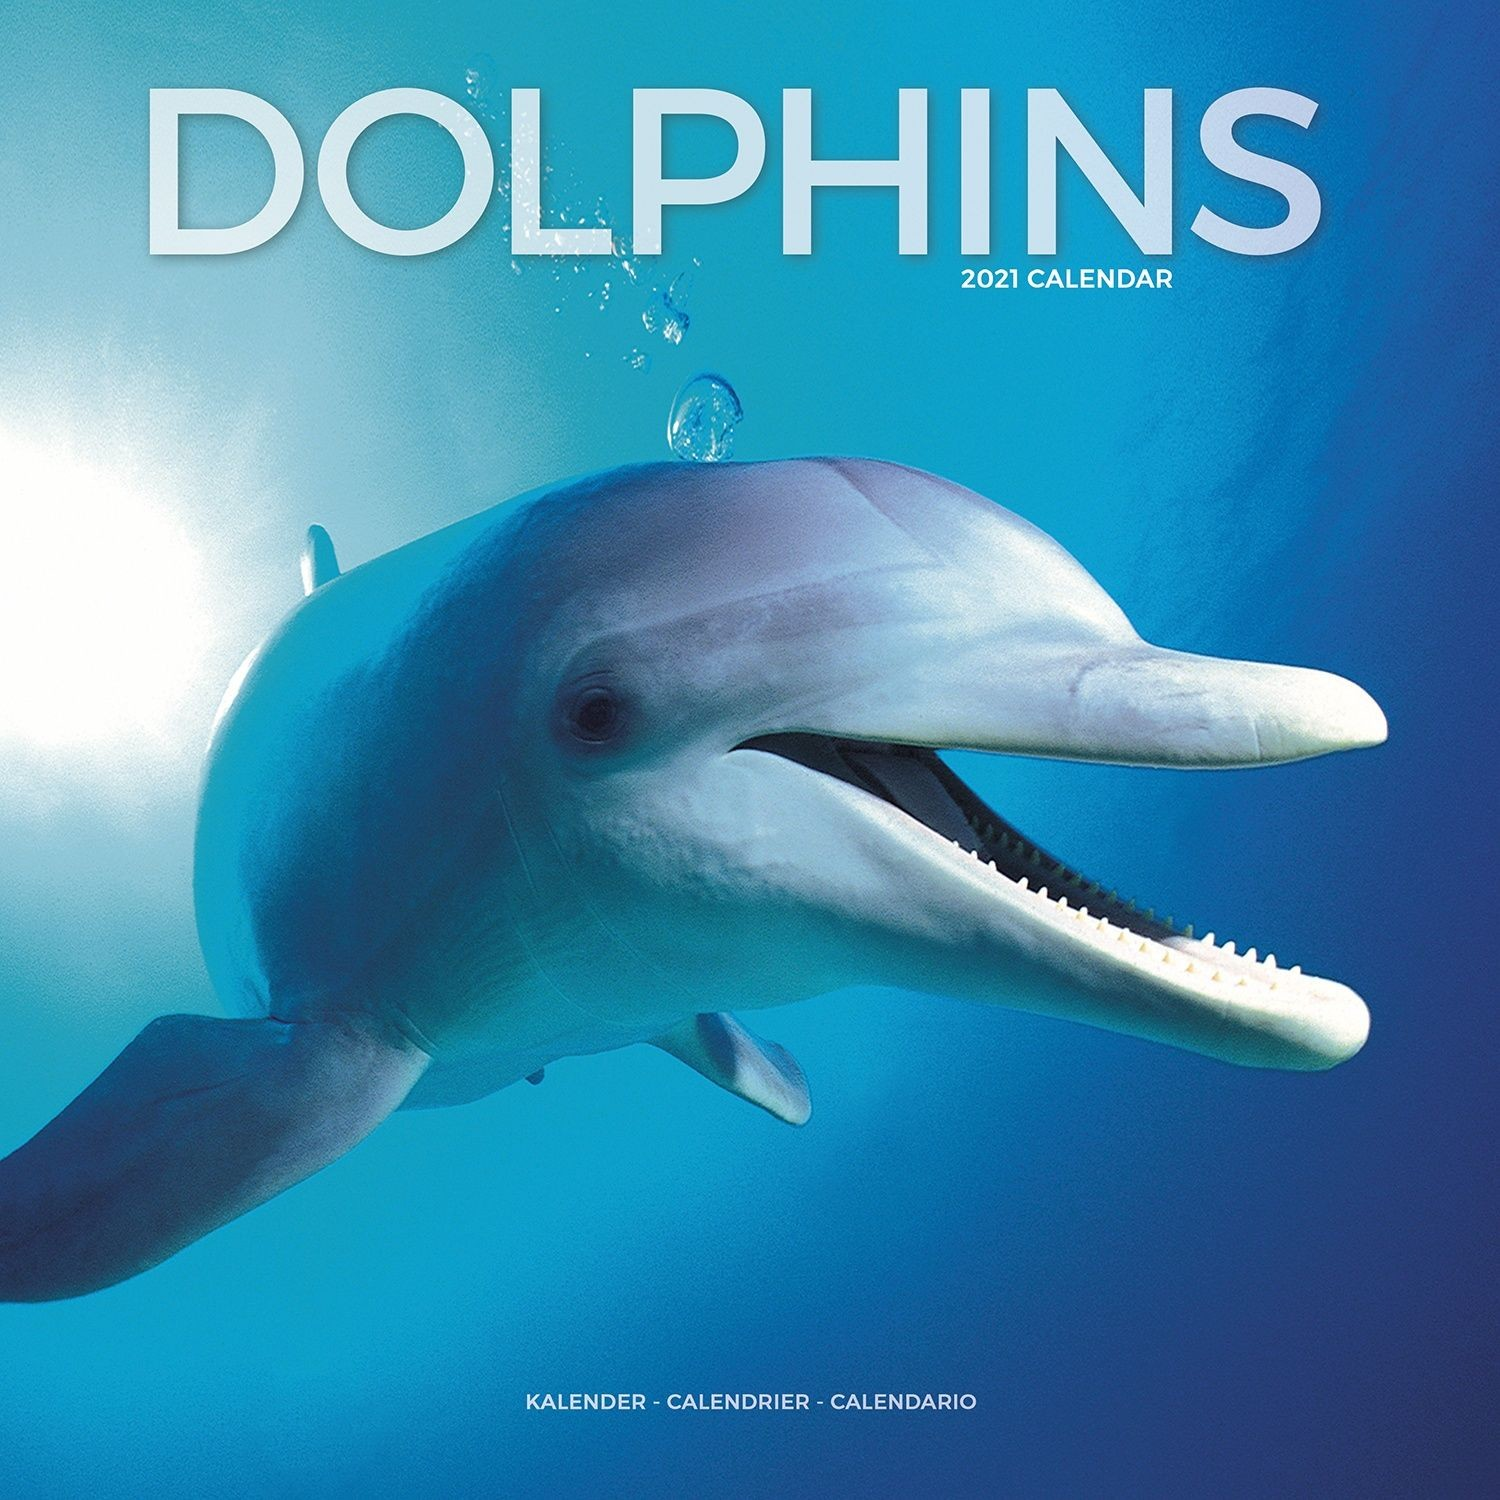 Dolphins Wall Calendar 2021 by Avonside